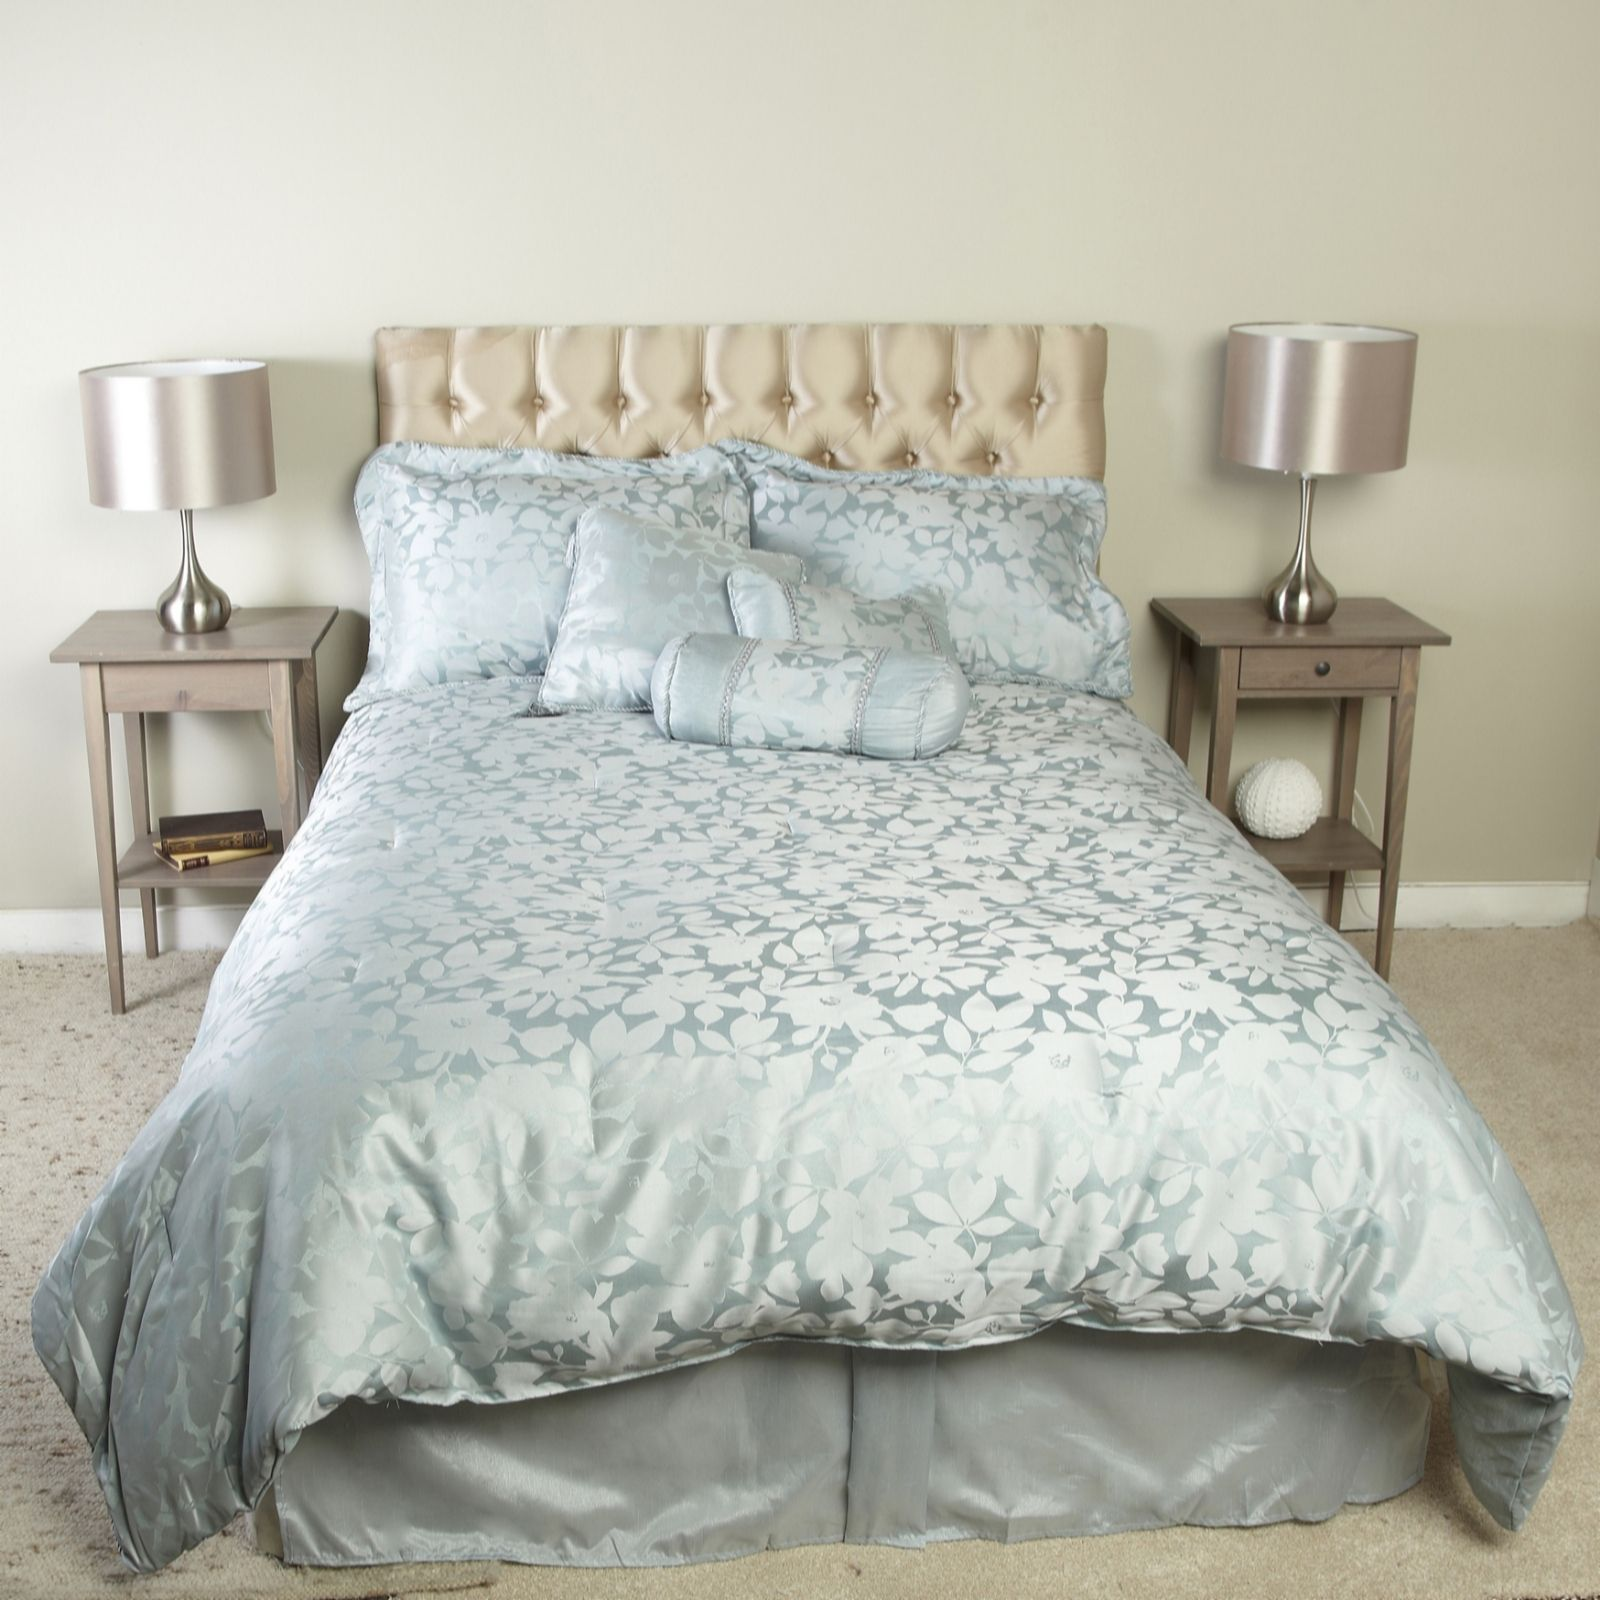 Bed In Abag With Sheets